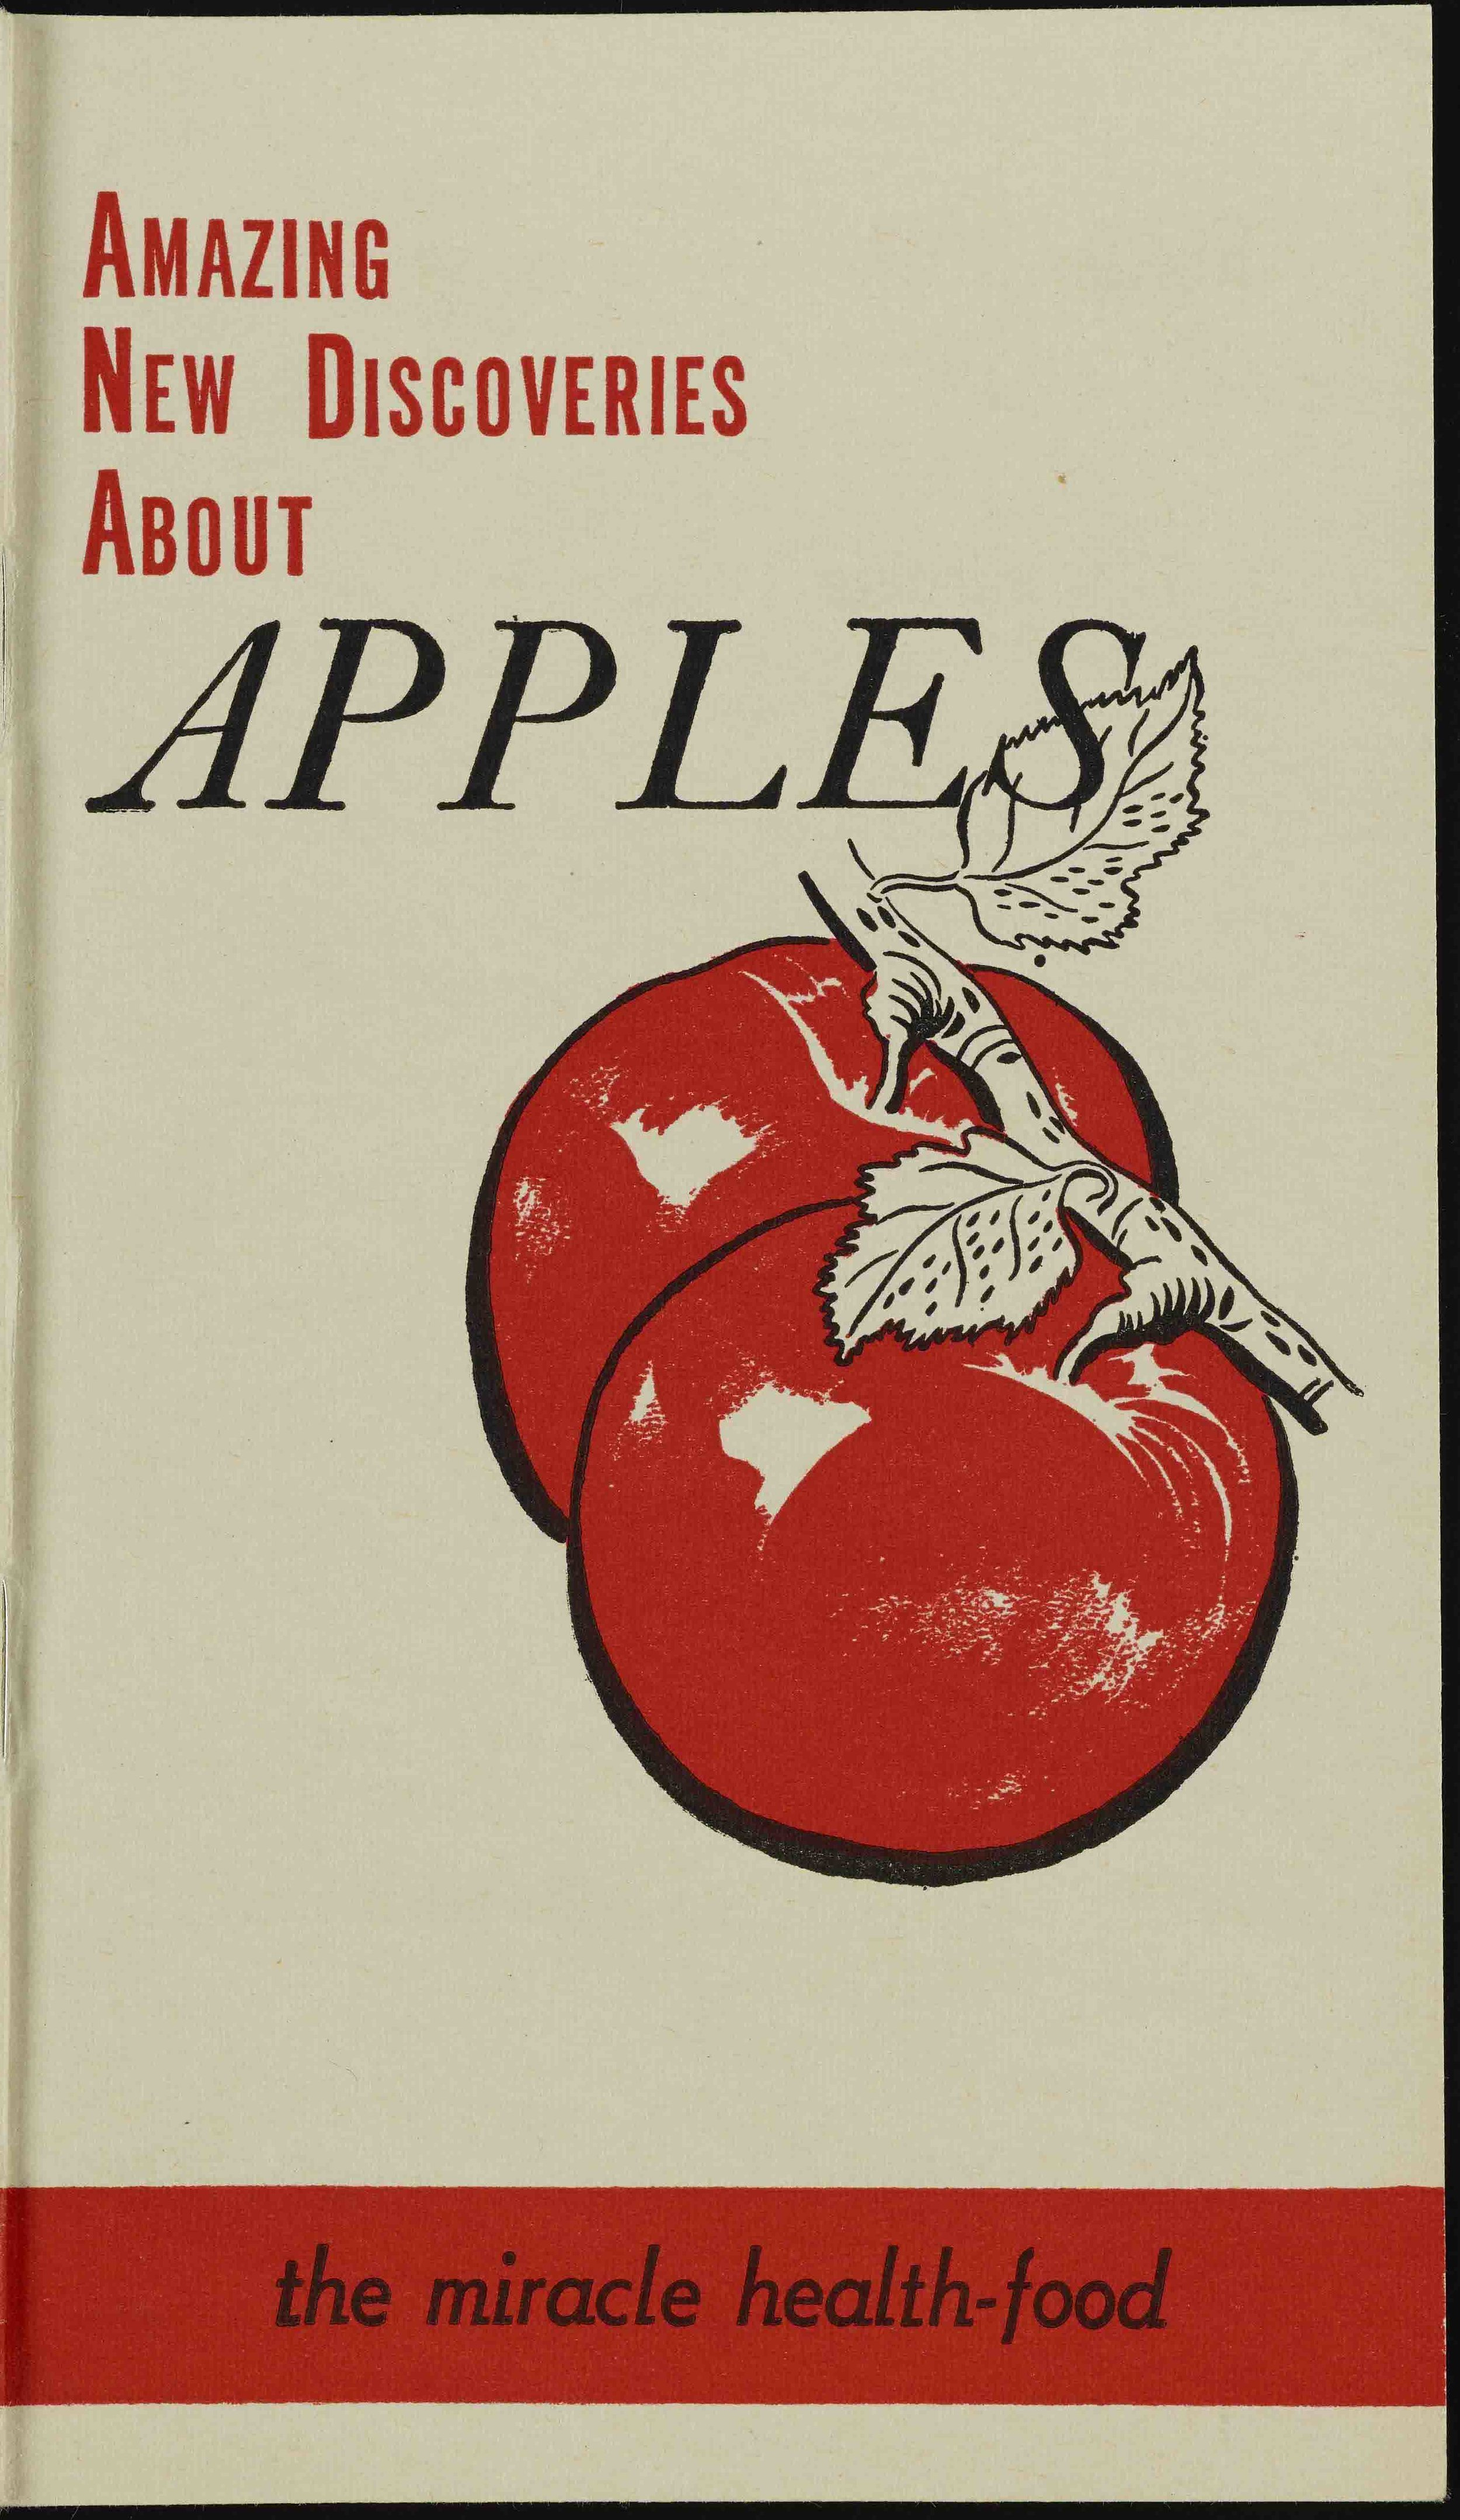 Miracle of Apples, New York and New England Apple Institute Inc.